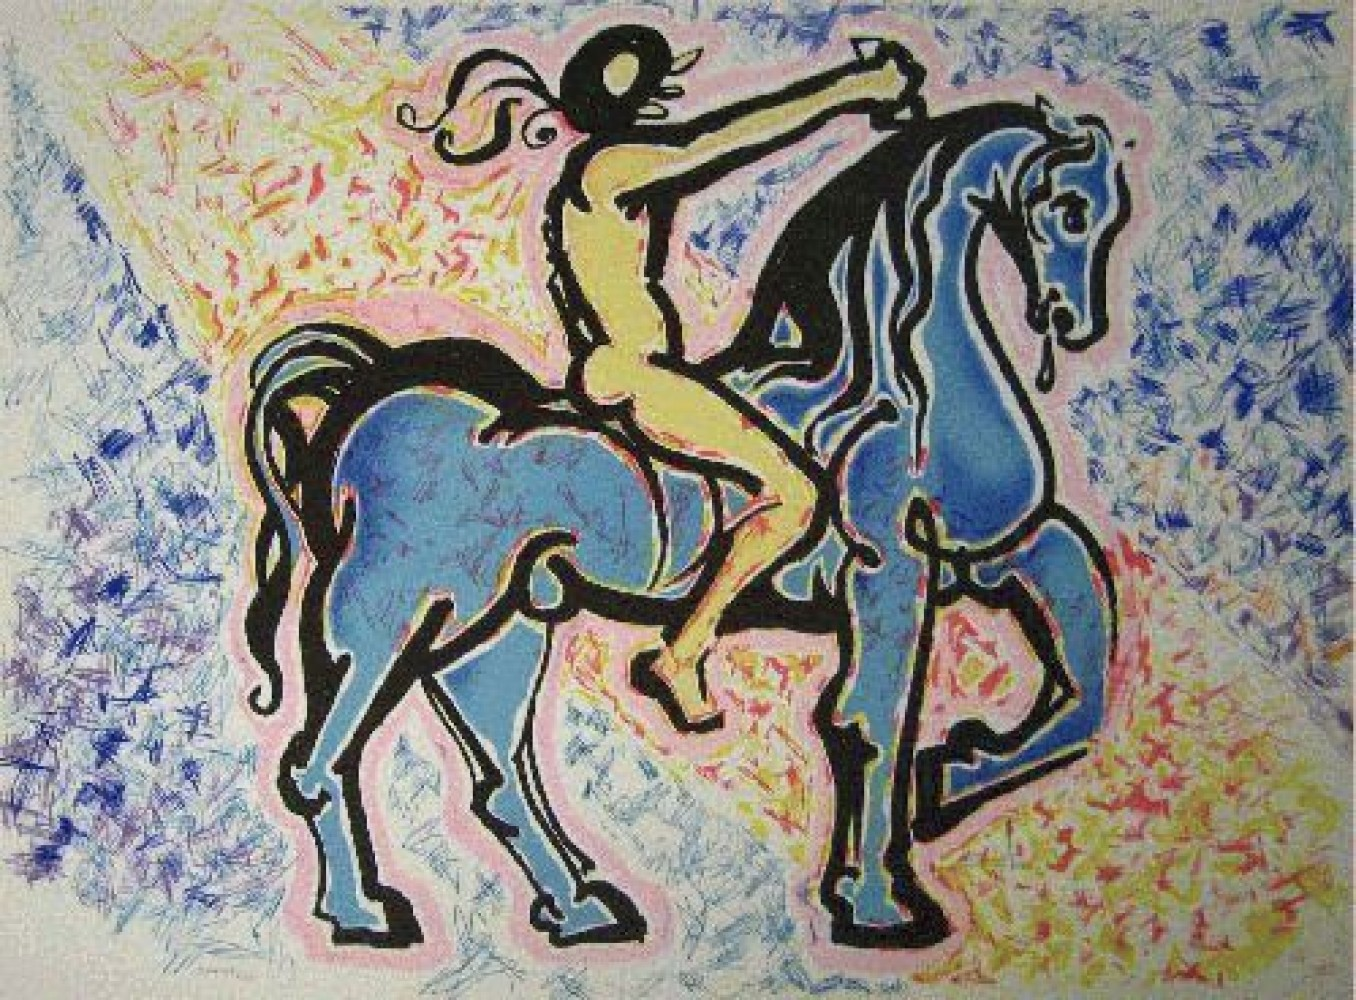 Le Cavalier, (Victory of Primitive Man) 1974